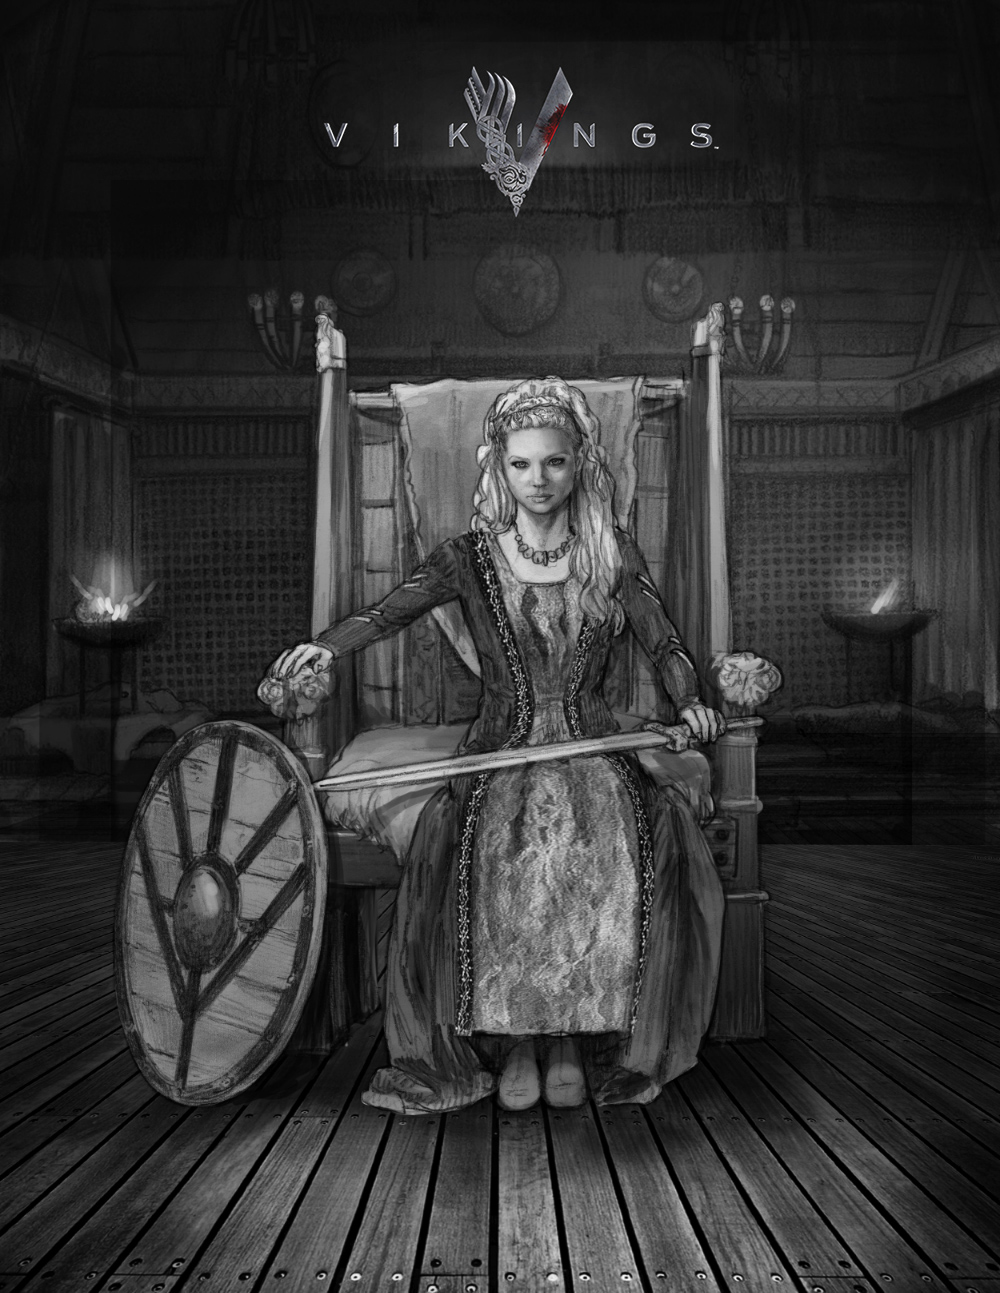 throne_comp_new+lagertha+3.jpg